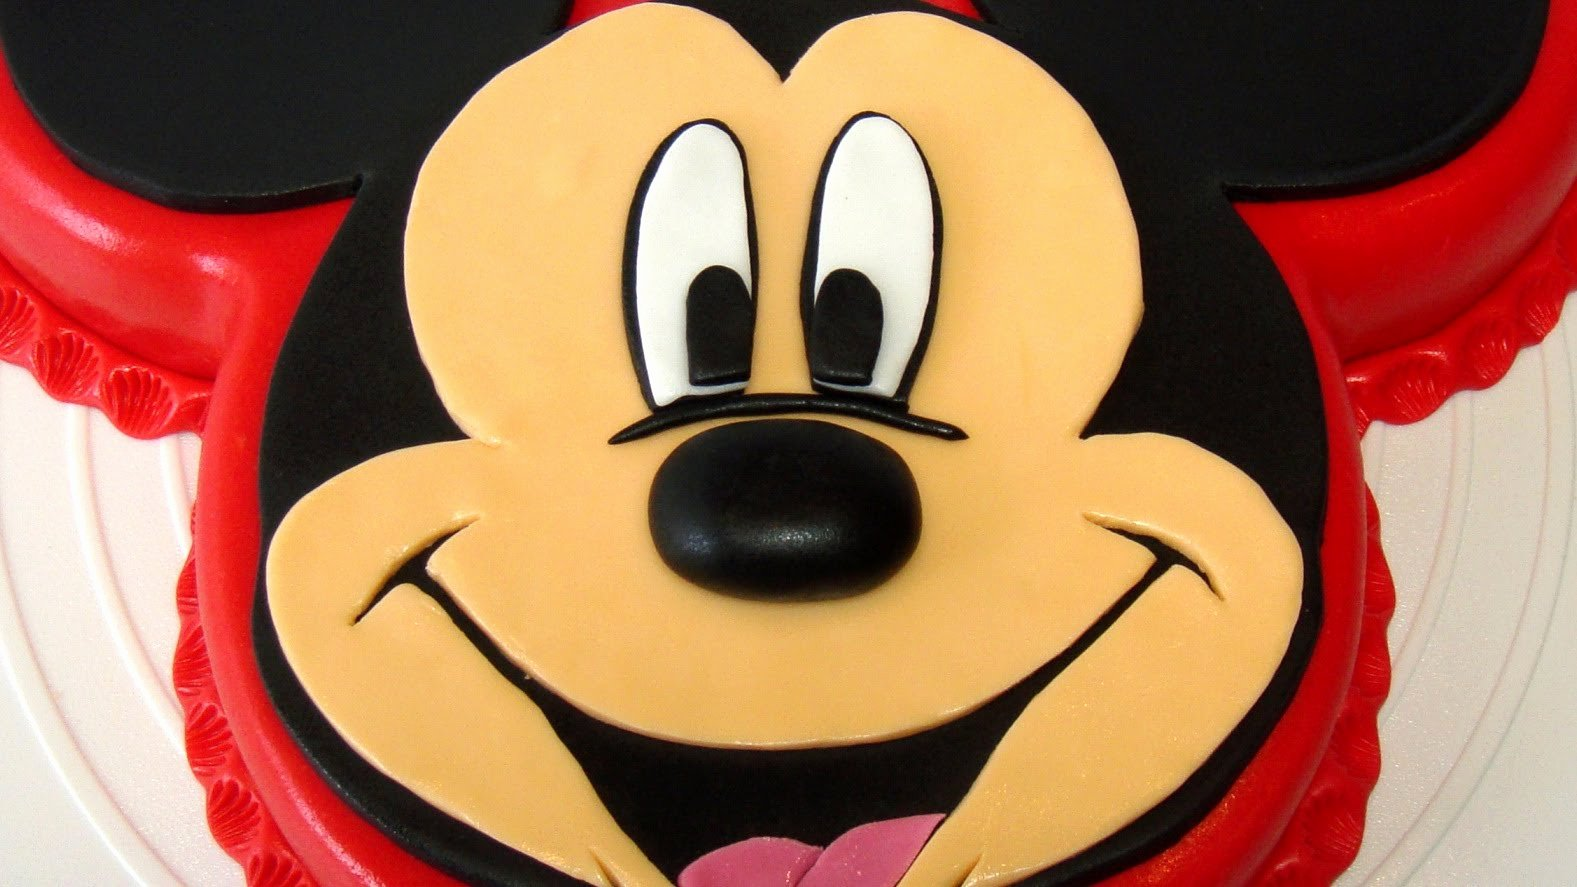 Mickey Mouse Face Template Awesome Best S Of Mickey Mouse Cake Template Mickey Mouse Face Cake Template Mickey Mouse Face